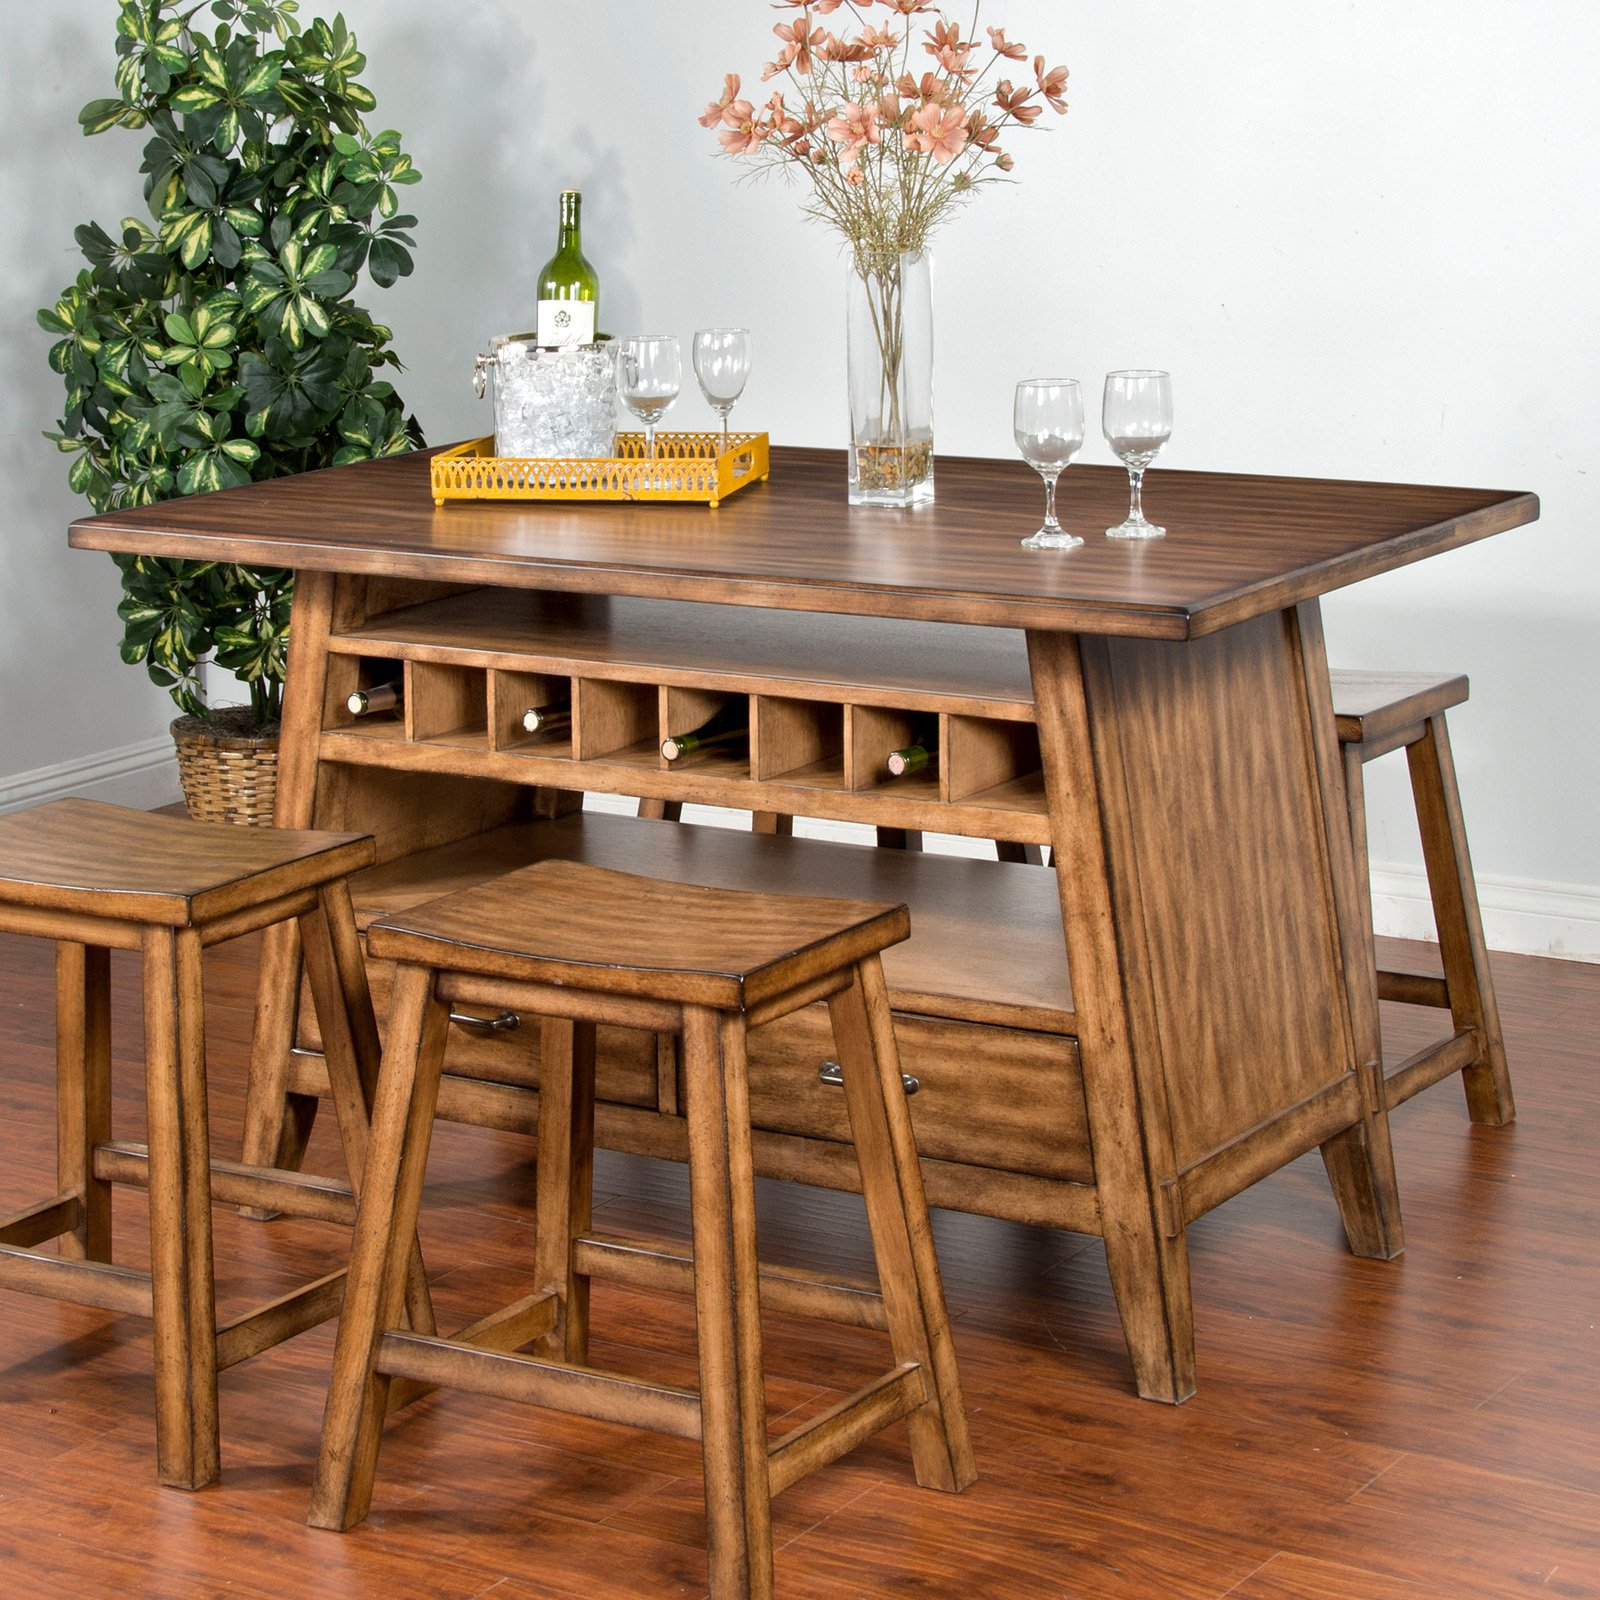 Sunny Designs Cornerstone Dining Table With Storage Throughout Recent Neves 43'' Dining Tables (View 11 of 15)